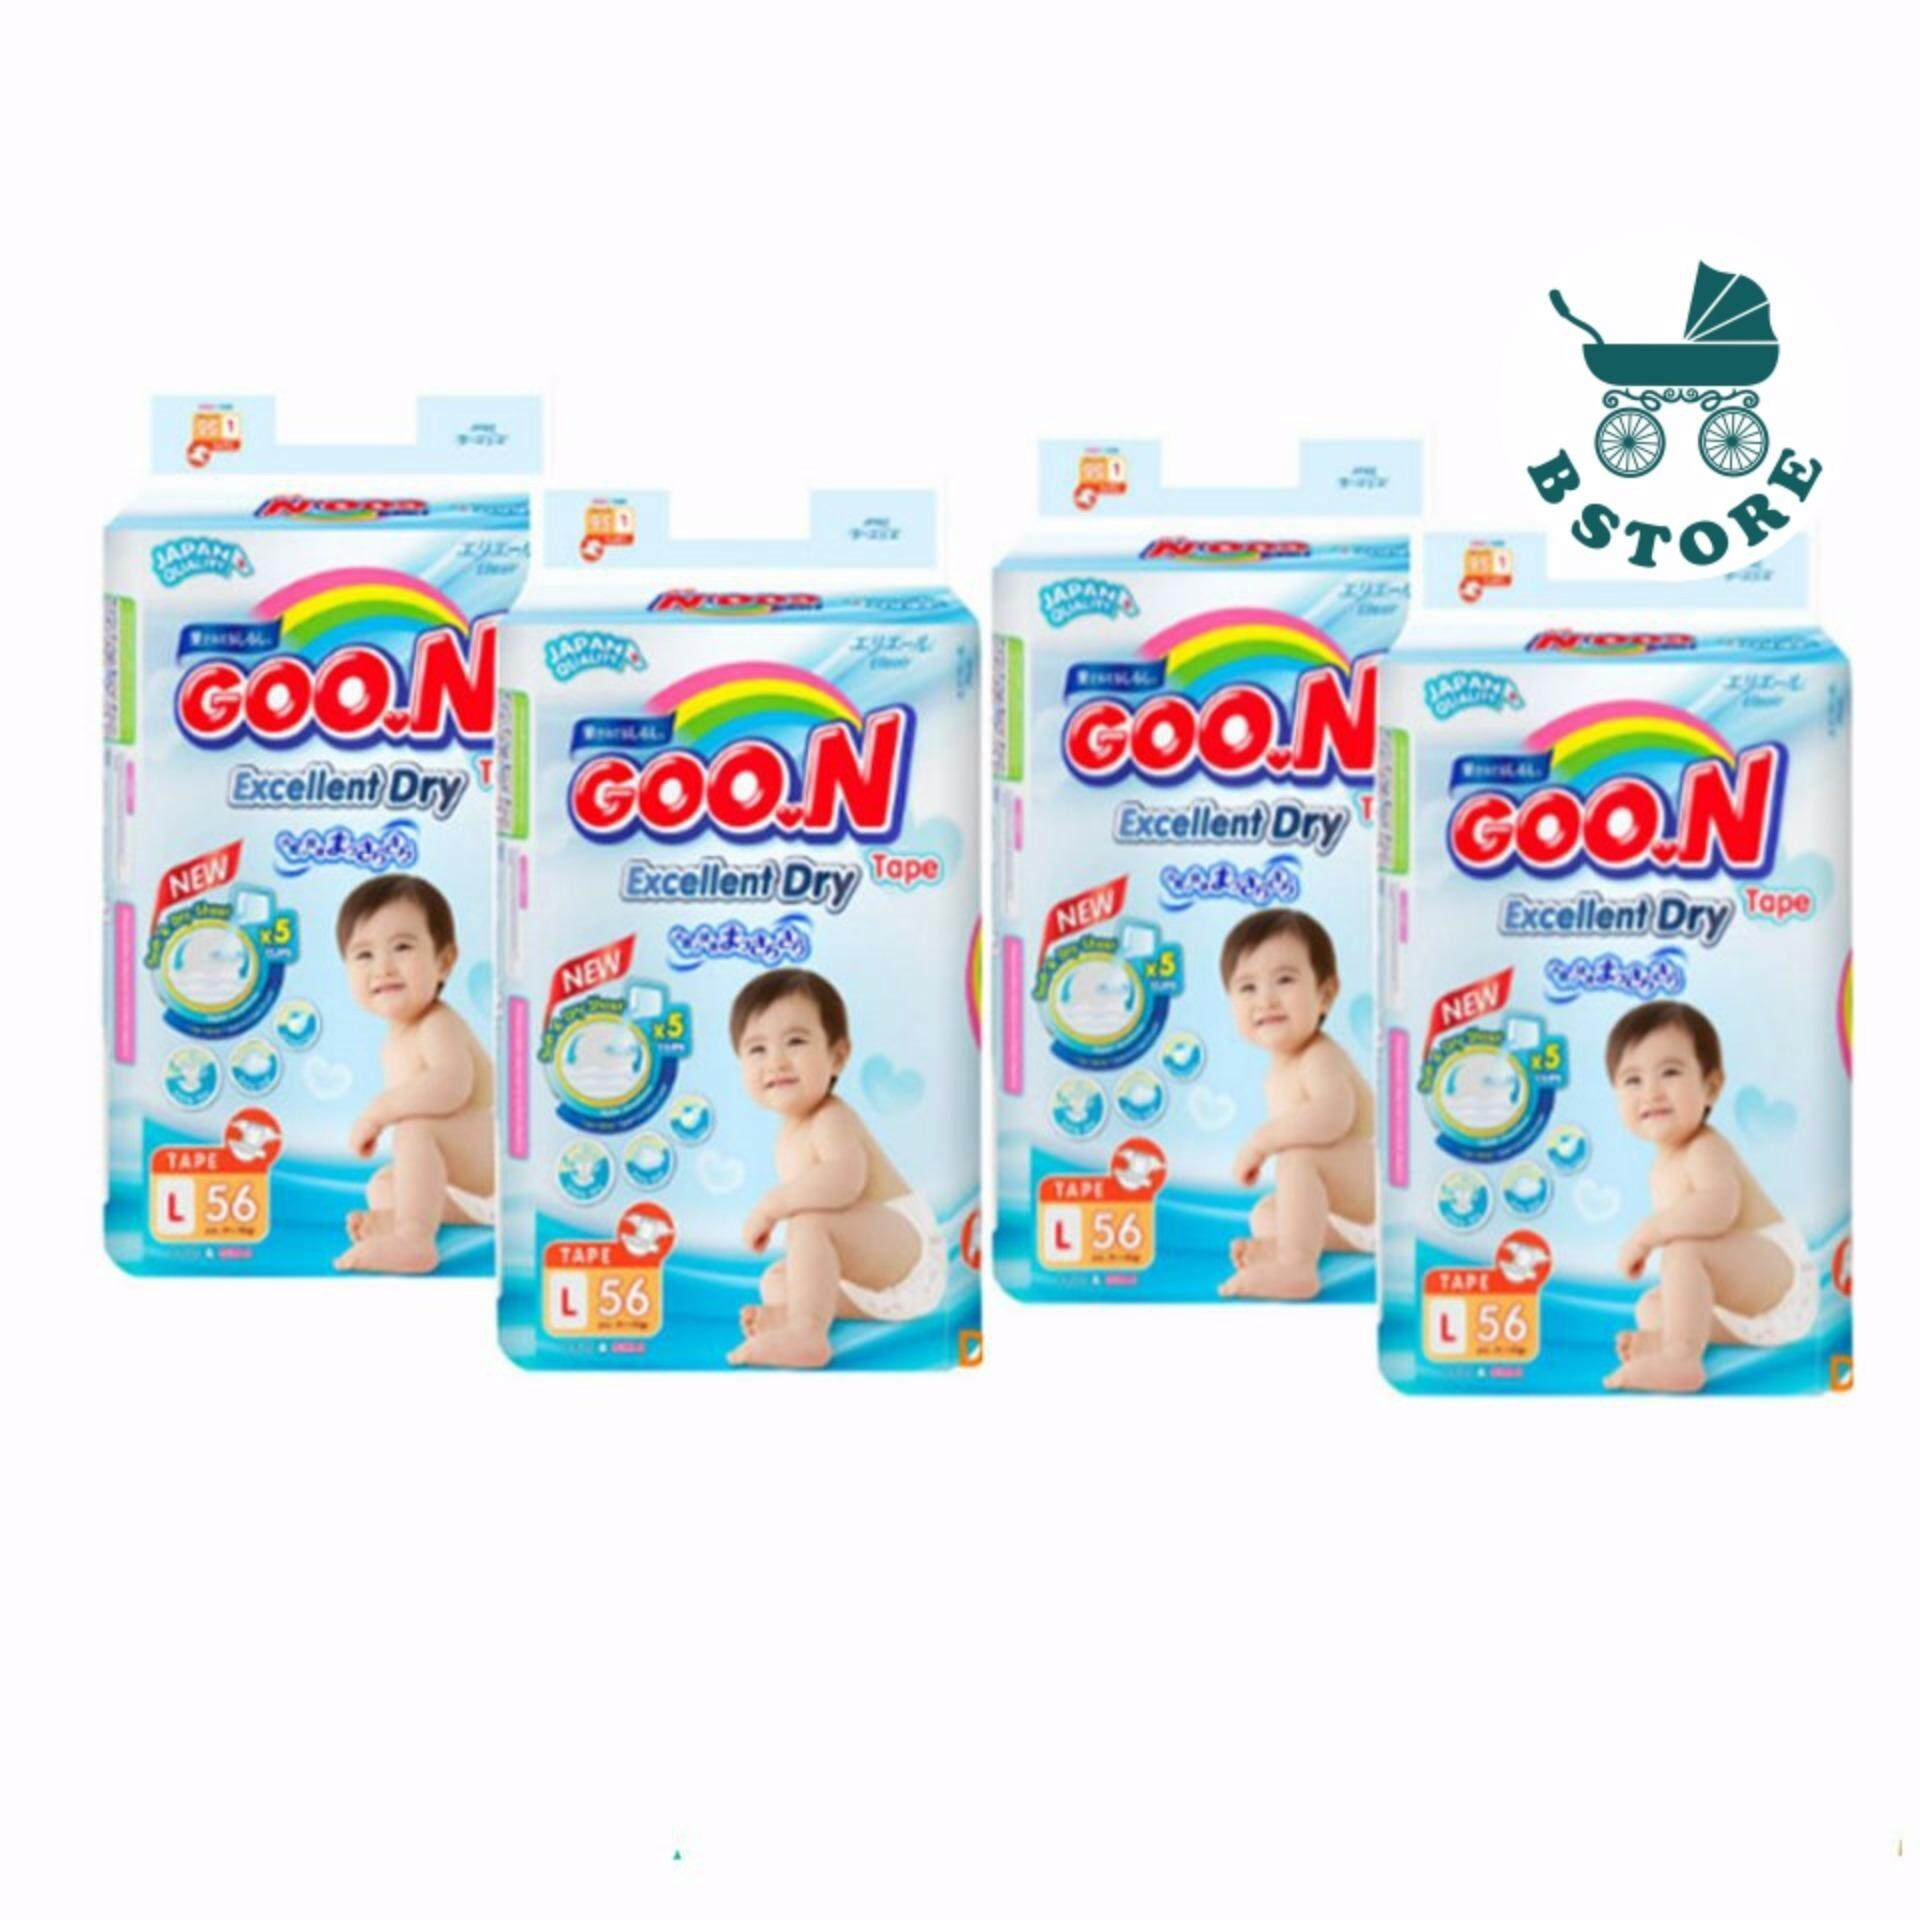 Disposable Diapers By Goon Reviews Ratings And Best Price In Kl Excellent Dry Nb 48 Diaper Super Jumbo Tape L Size 4 Pack